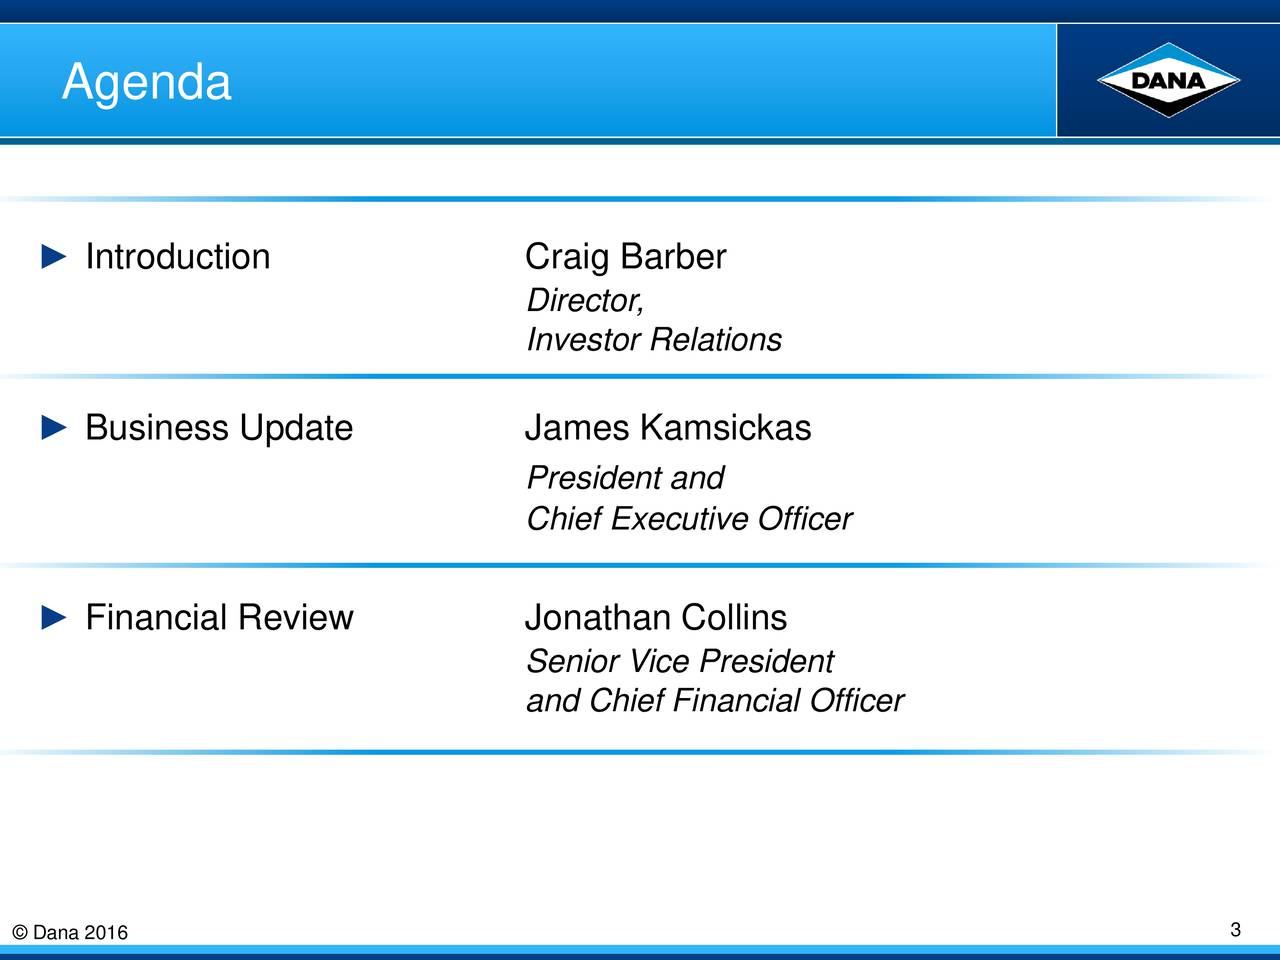 Introduction Craig Barber Director, Investor Relations Business Update James Kamsickas President and Chief Executive Officer Financial Review Jonathan Collins Senior Vice President and Chief Financial Officer Dana 2016 3